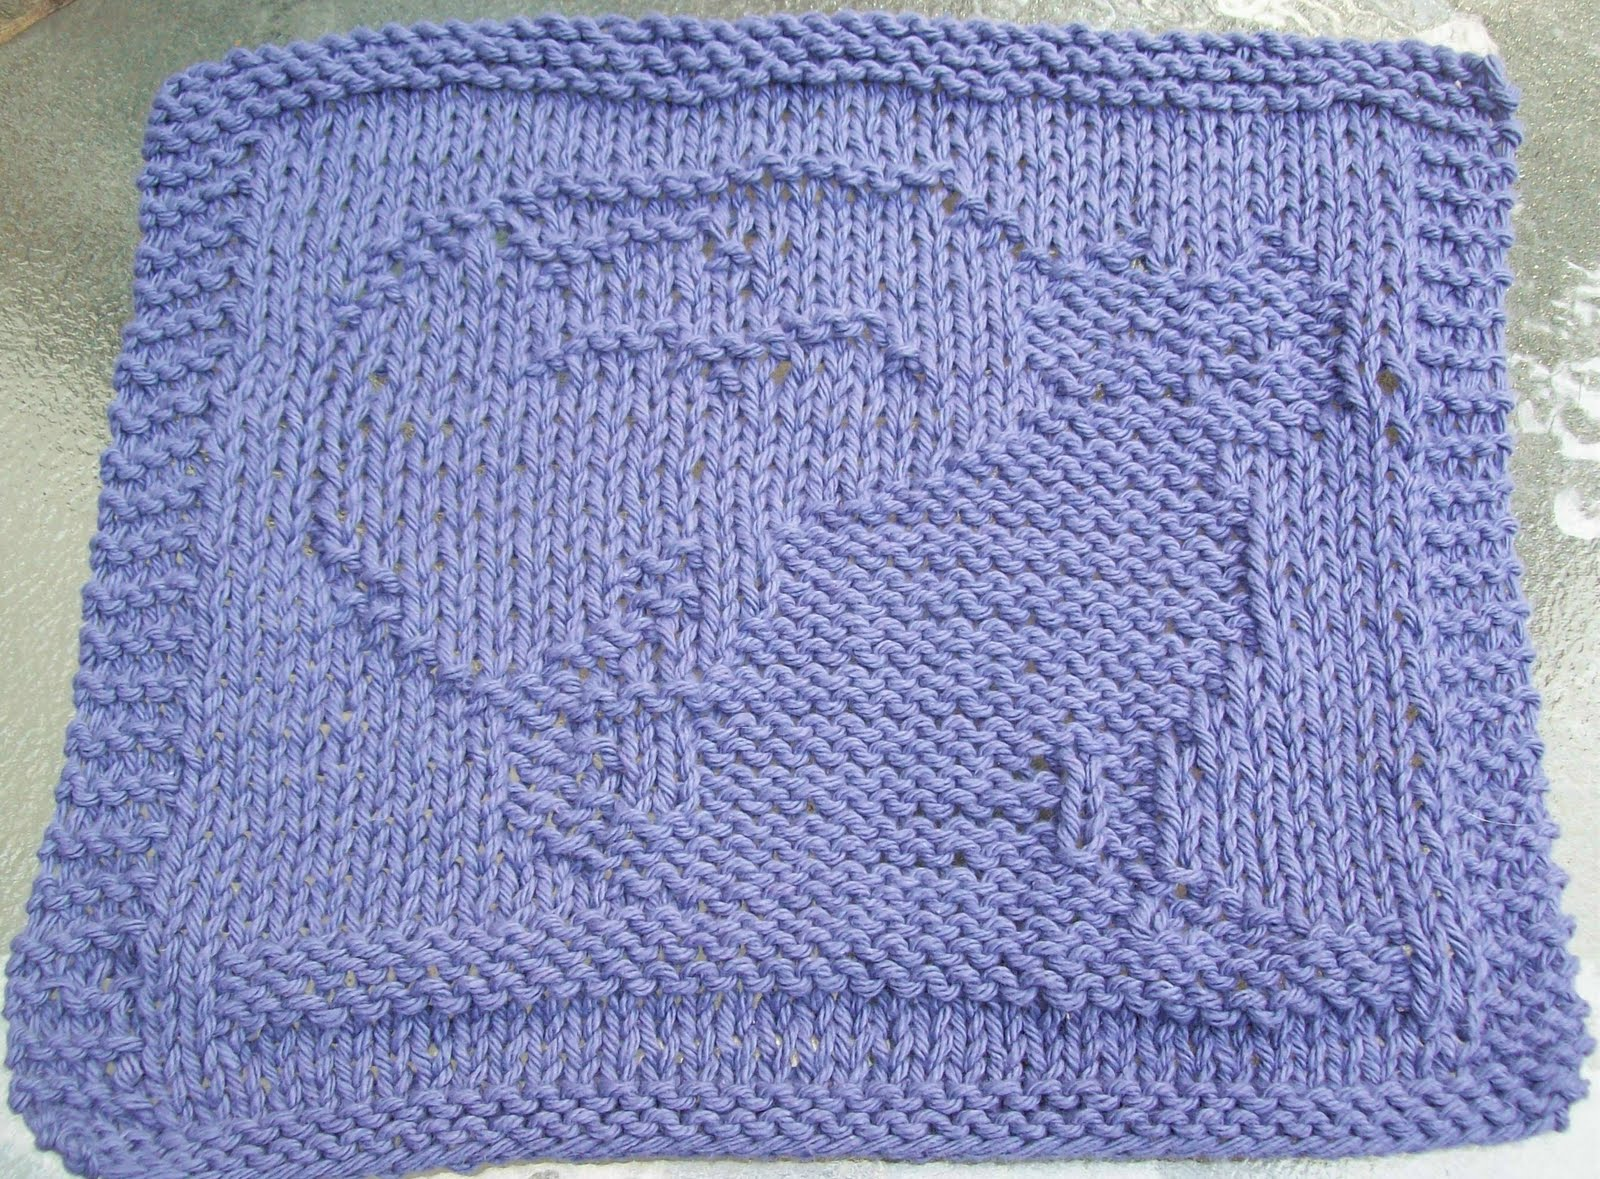 Knitted Dalek Pattern : DigKnitty Designs: Cat and Moon Knit Dishcloth Pattern